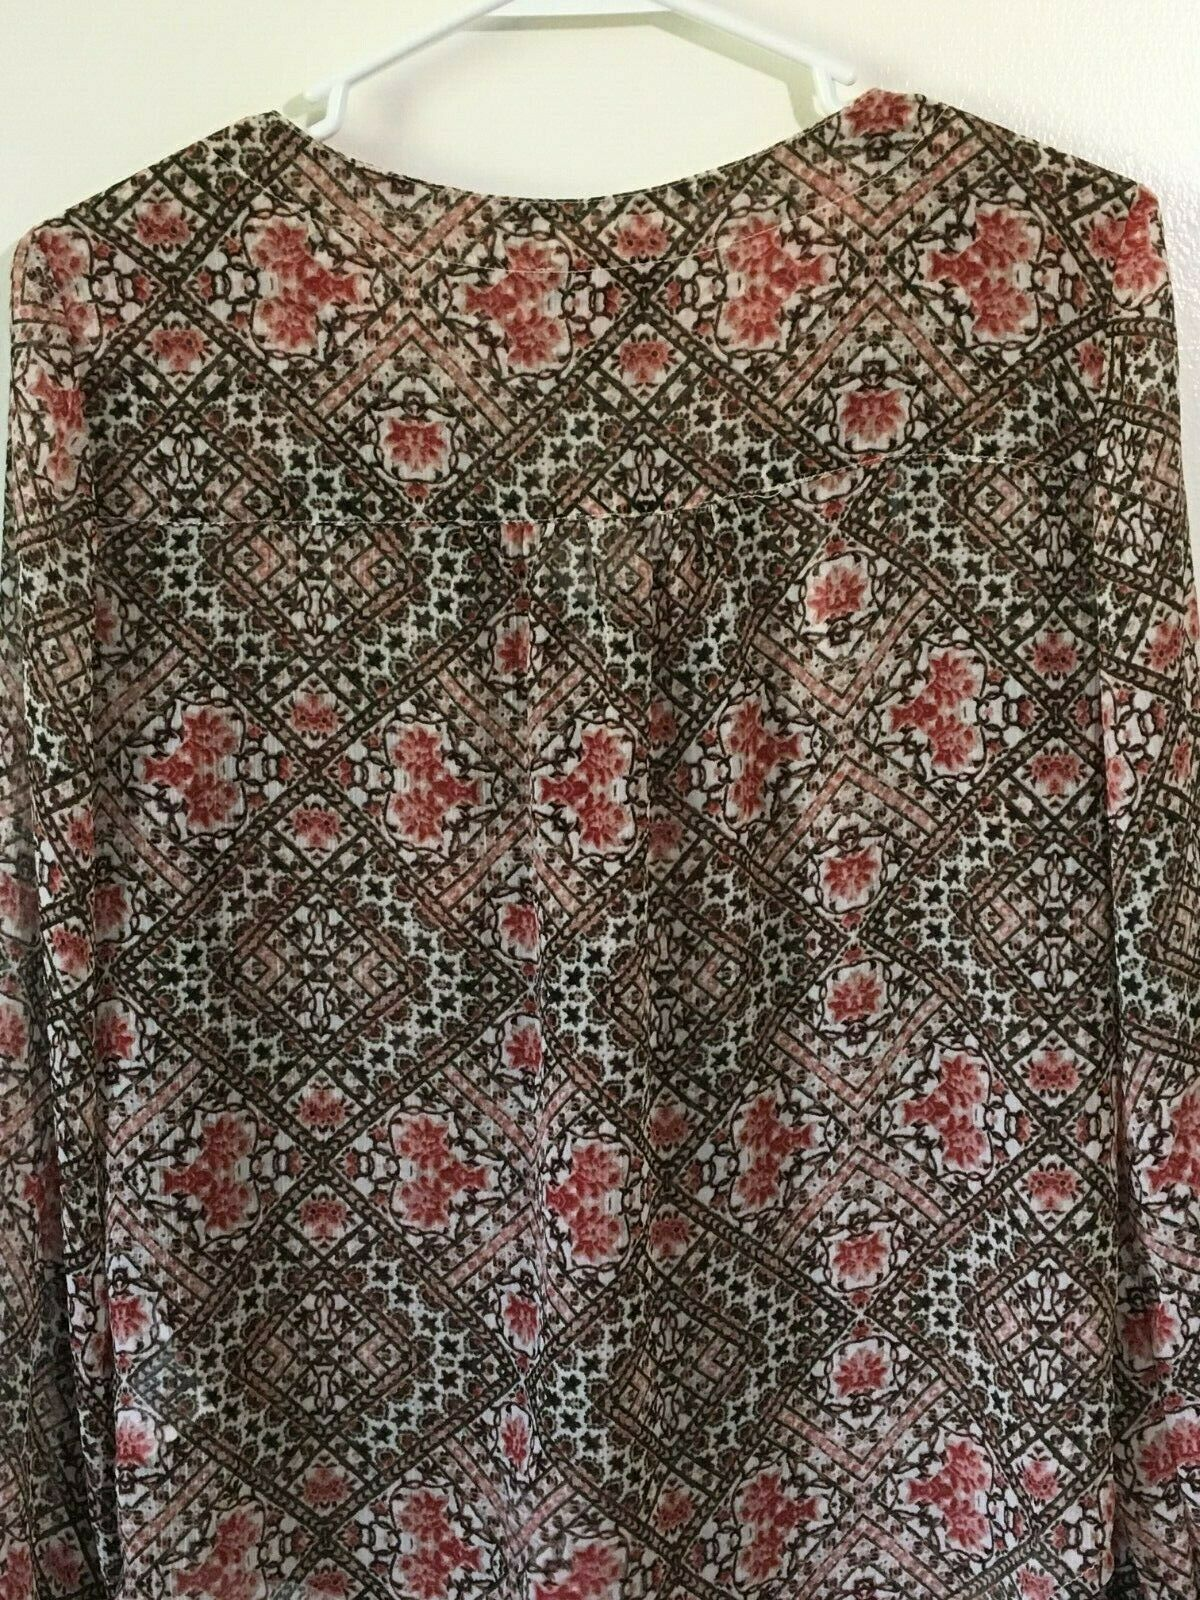 Women's Top Blouse Size M Semi Sheer Long Sleeve Red Floral Jessica Simpson